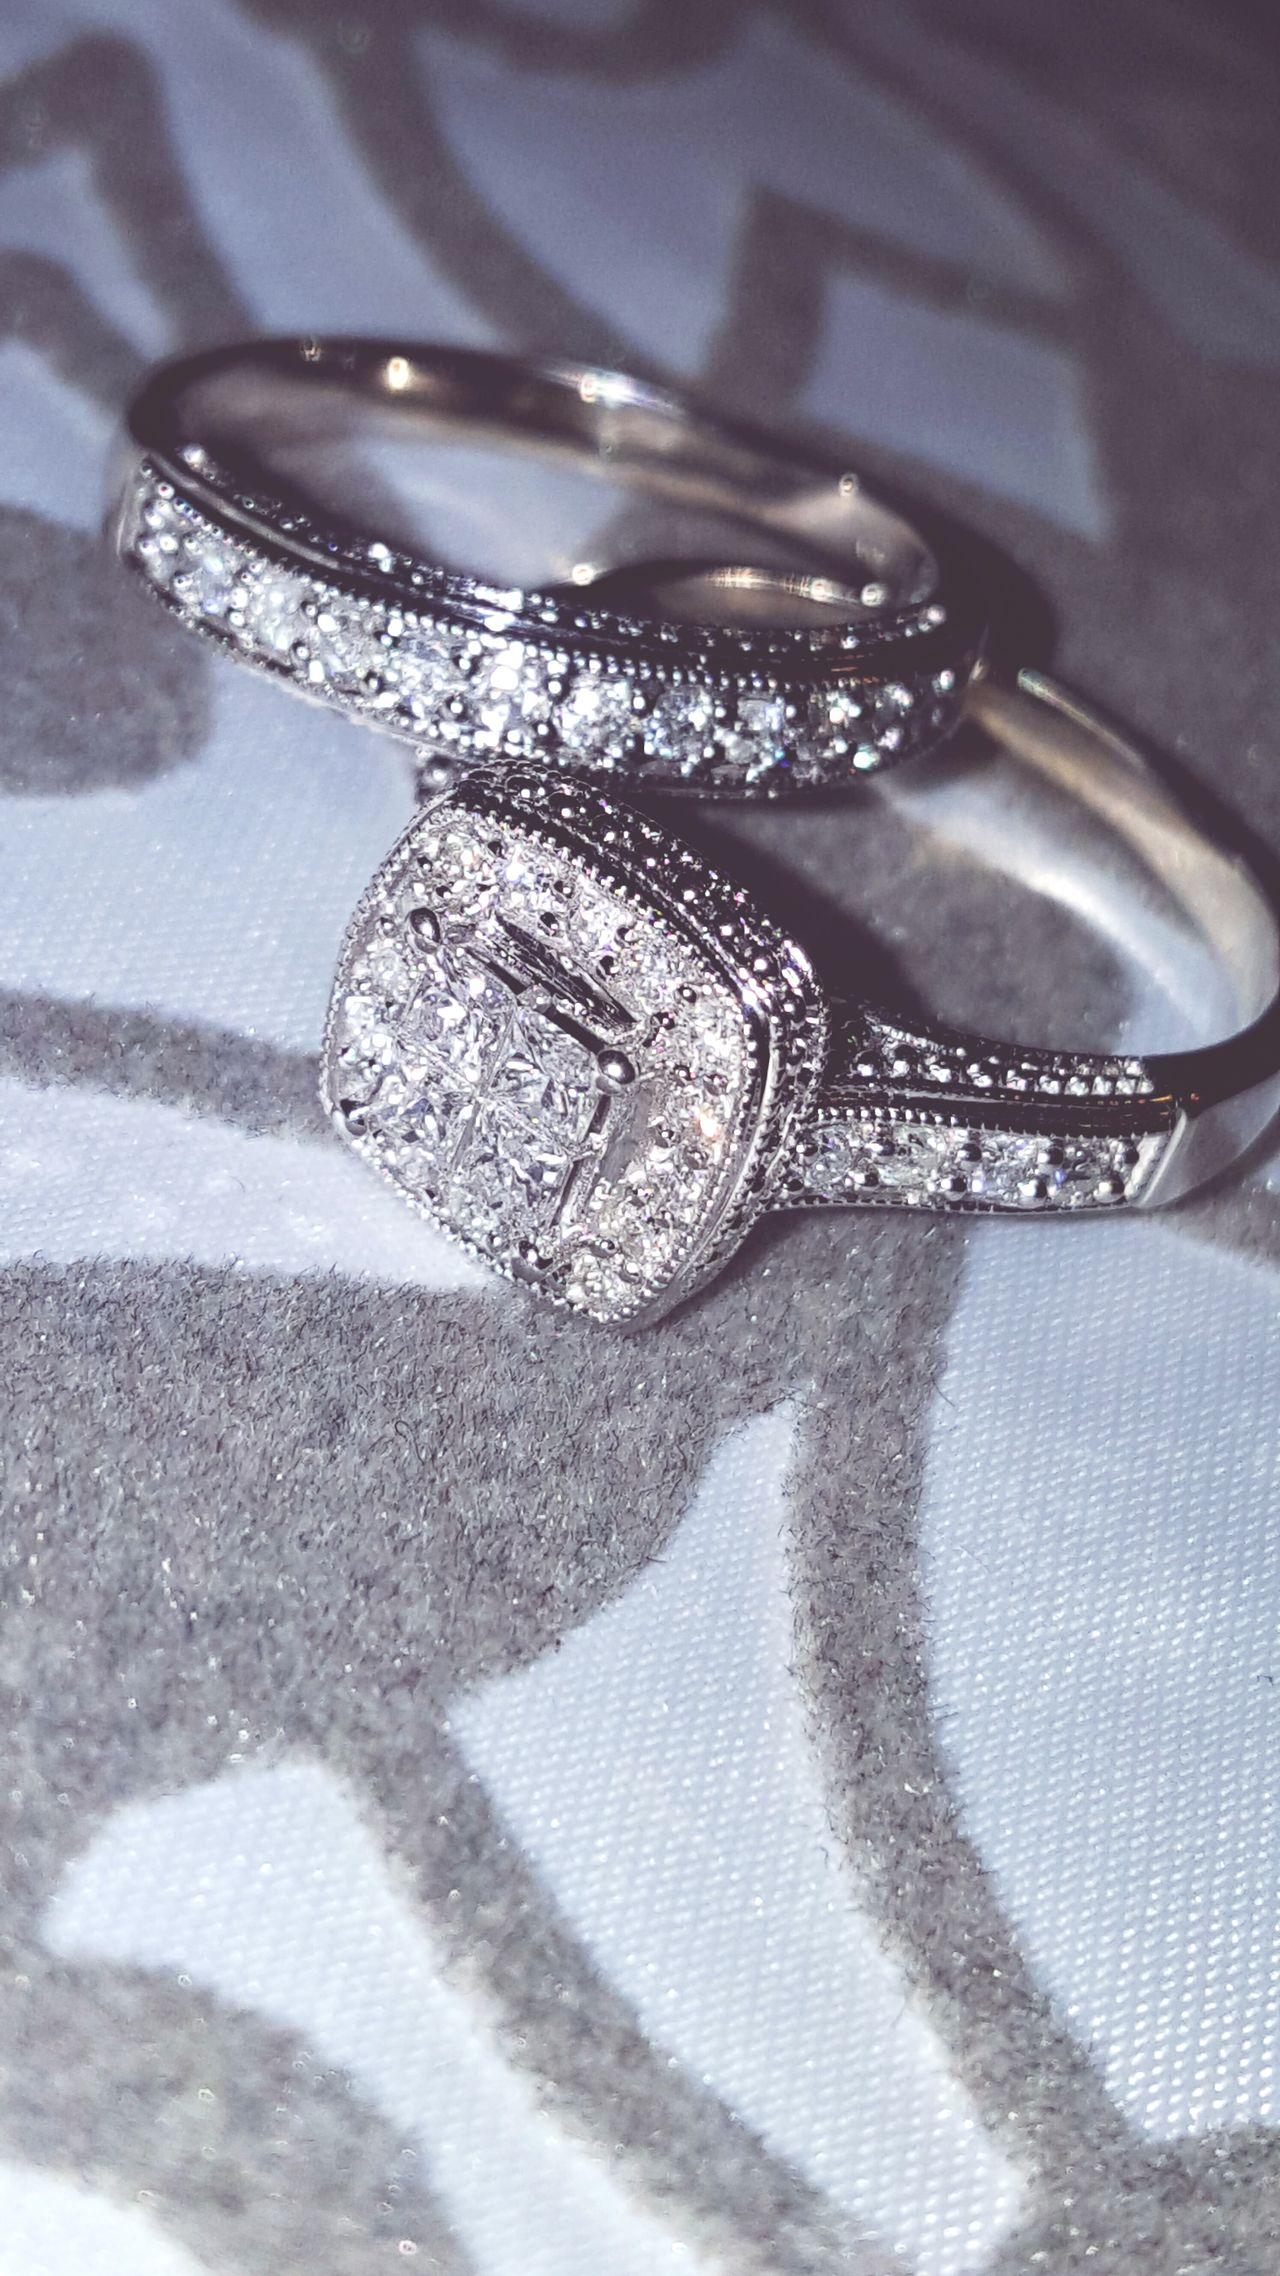 Love Promise Ring Engagement Love Birds Forever Engaged Excited Special Moment Bond A Vow New Life Happily Ever After A New Beginning A New Start As One Equal Life Long Commitment Marriage